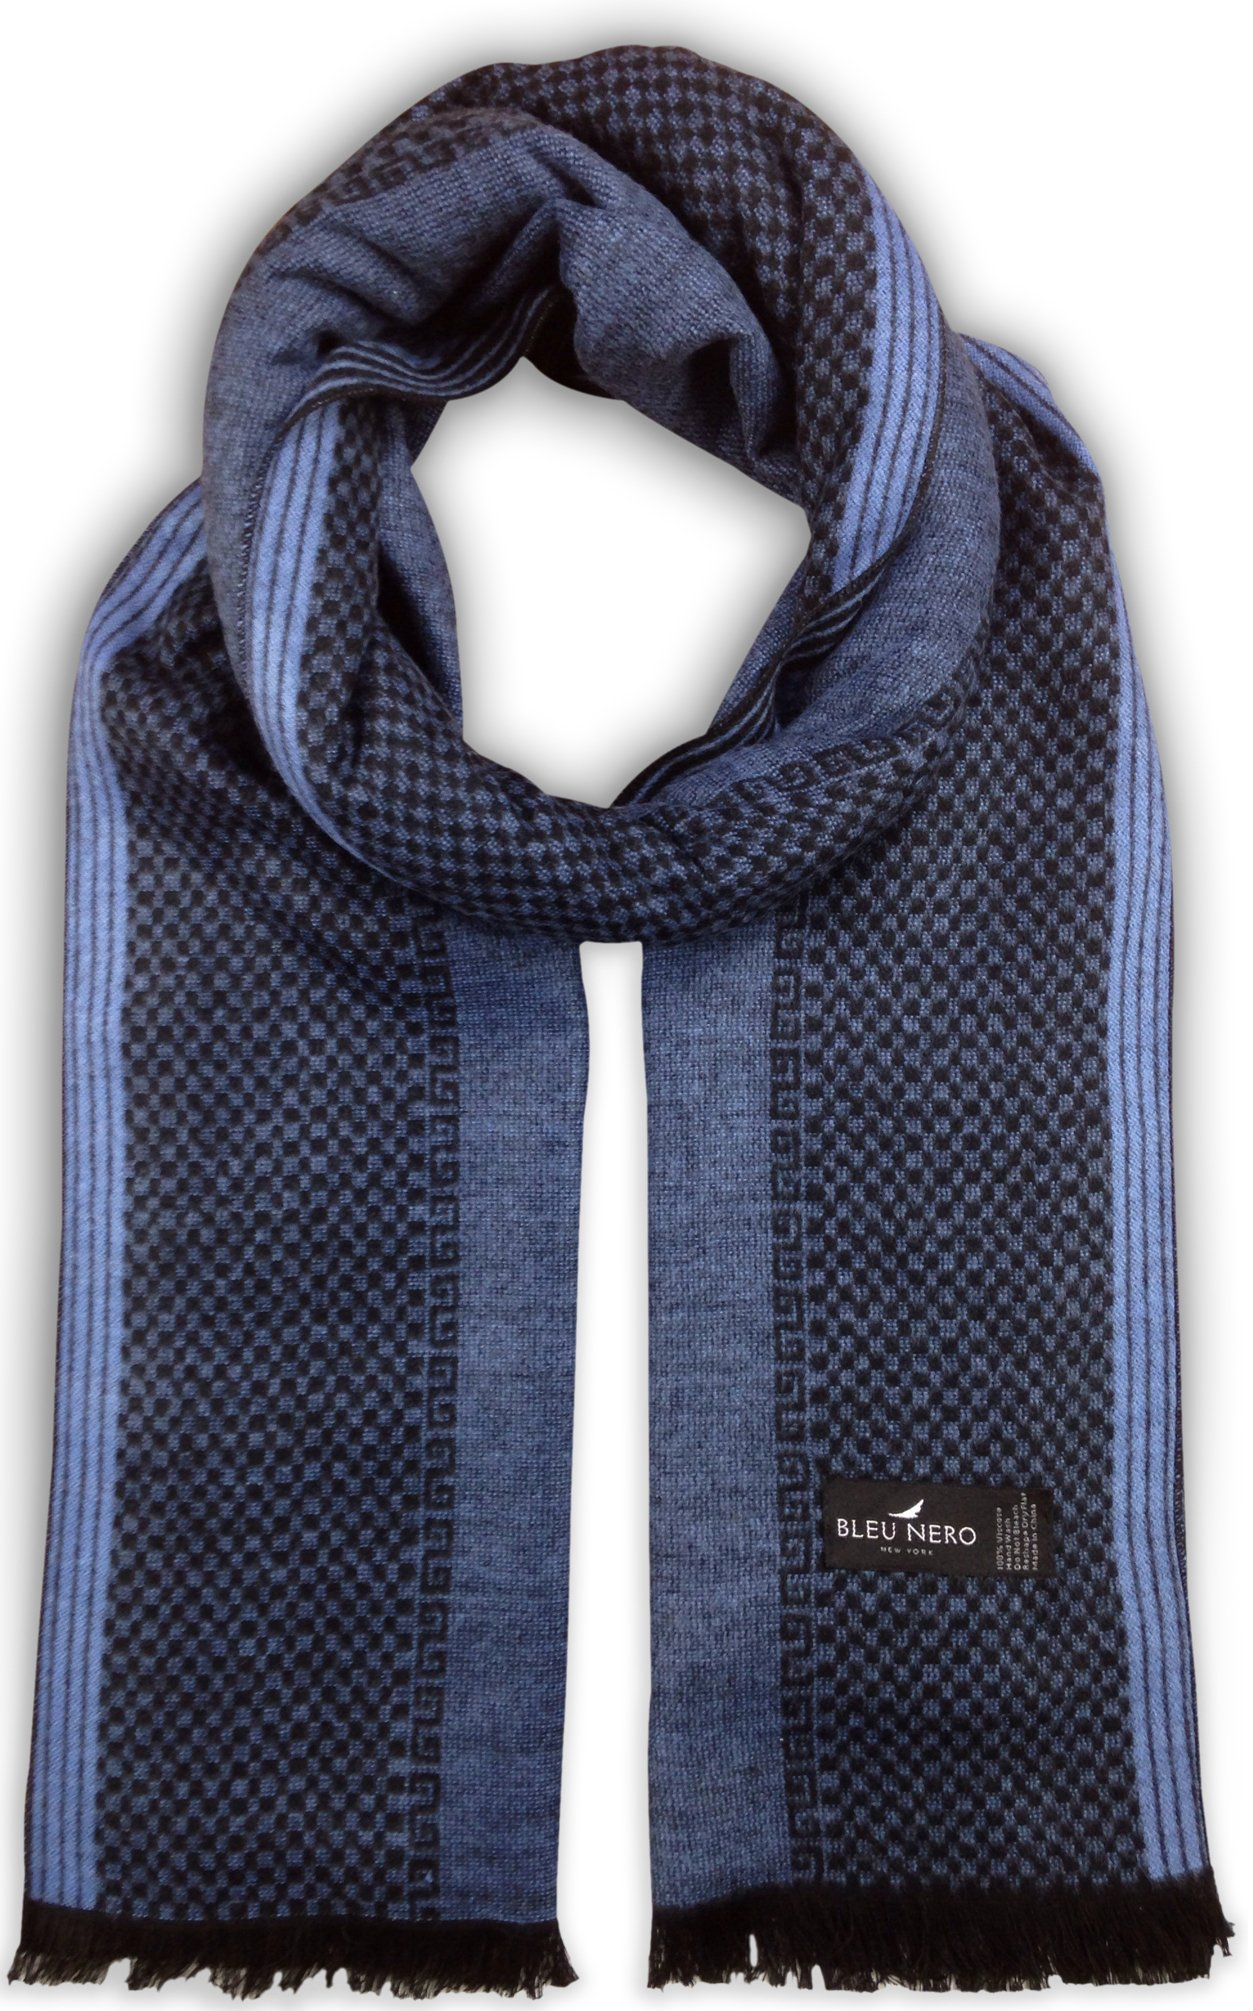 Bleu Nero Luxurious Winter Scarf for Men and Women – Large Selection of Unique Design Scarves – Super Soft Premium Cashmere Feel (Bright Blue/Black Vertical)